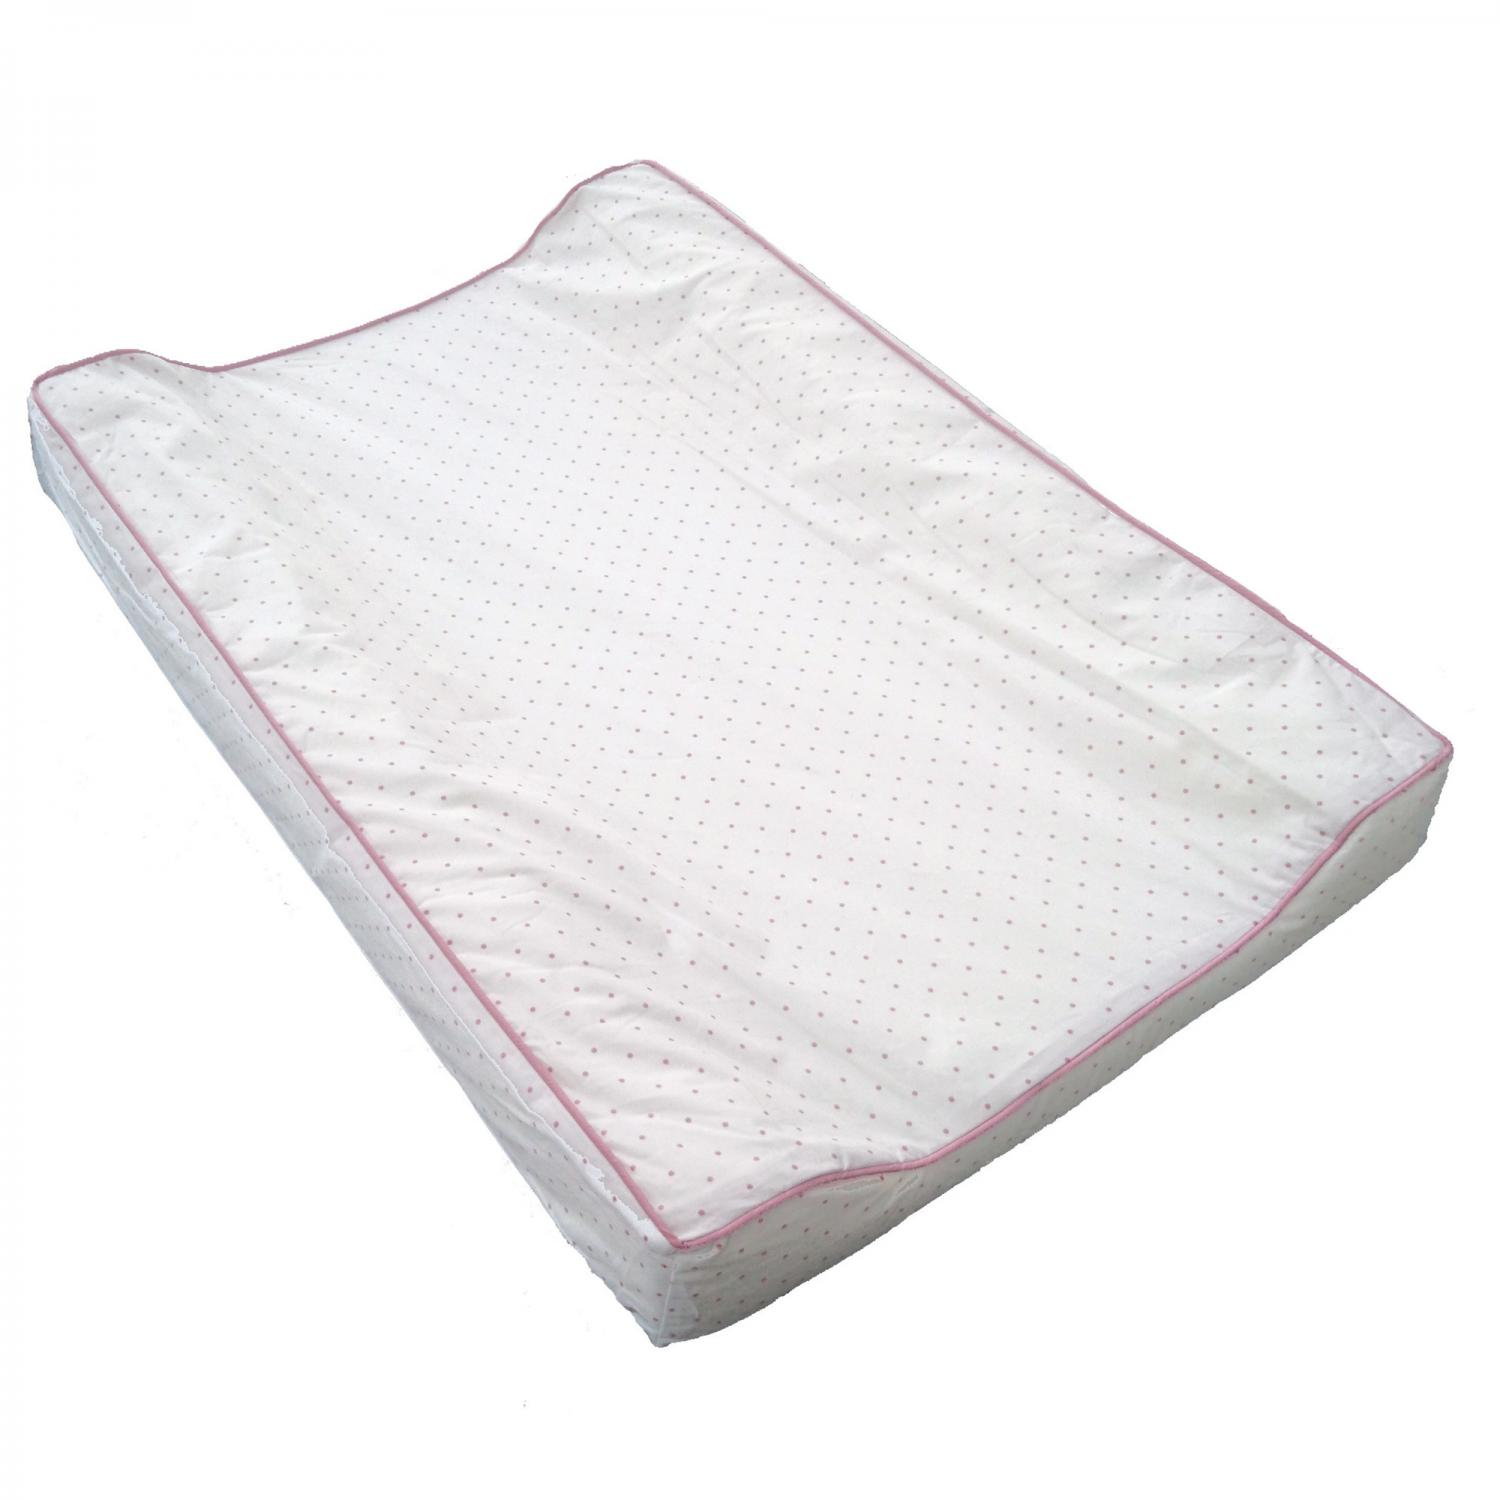 Changing pad white/pink dotty